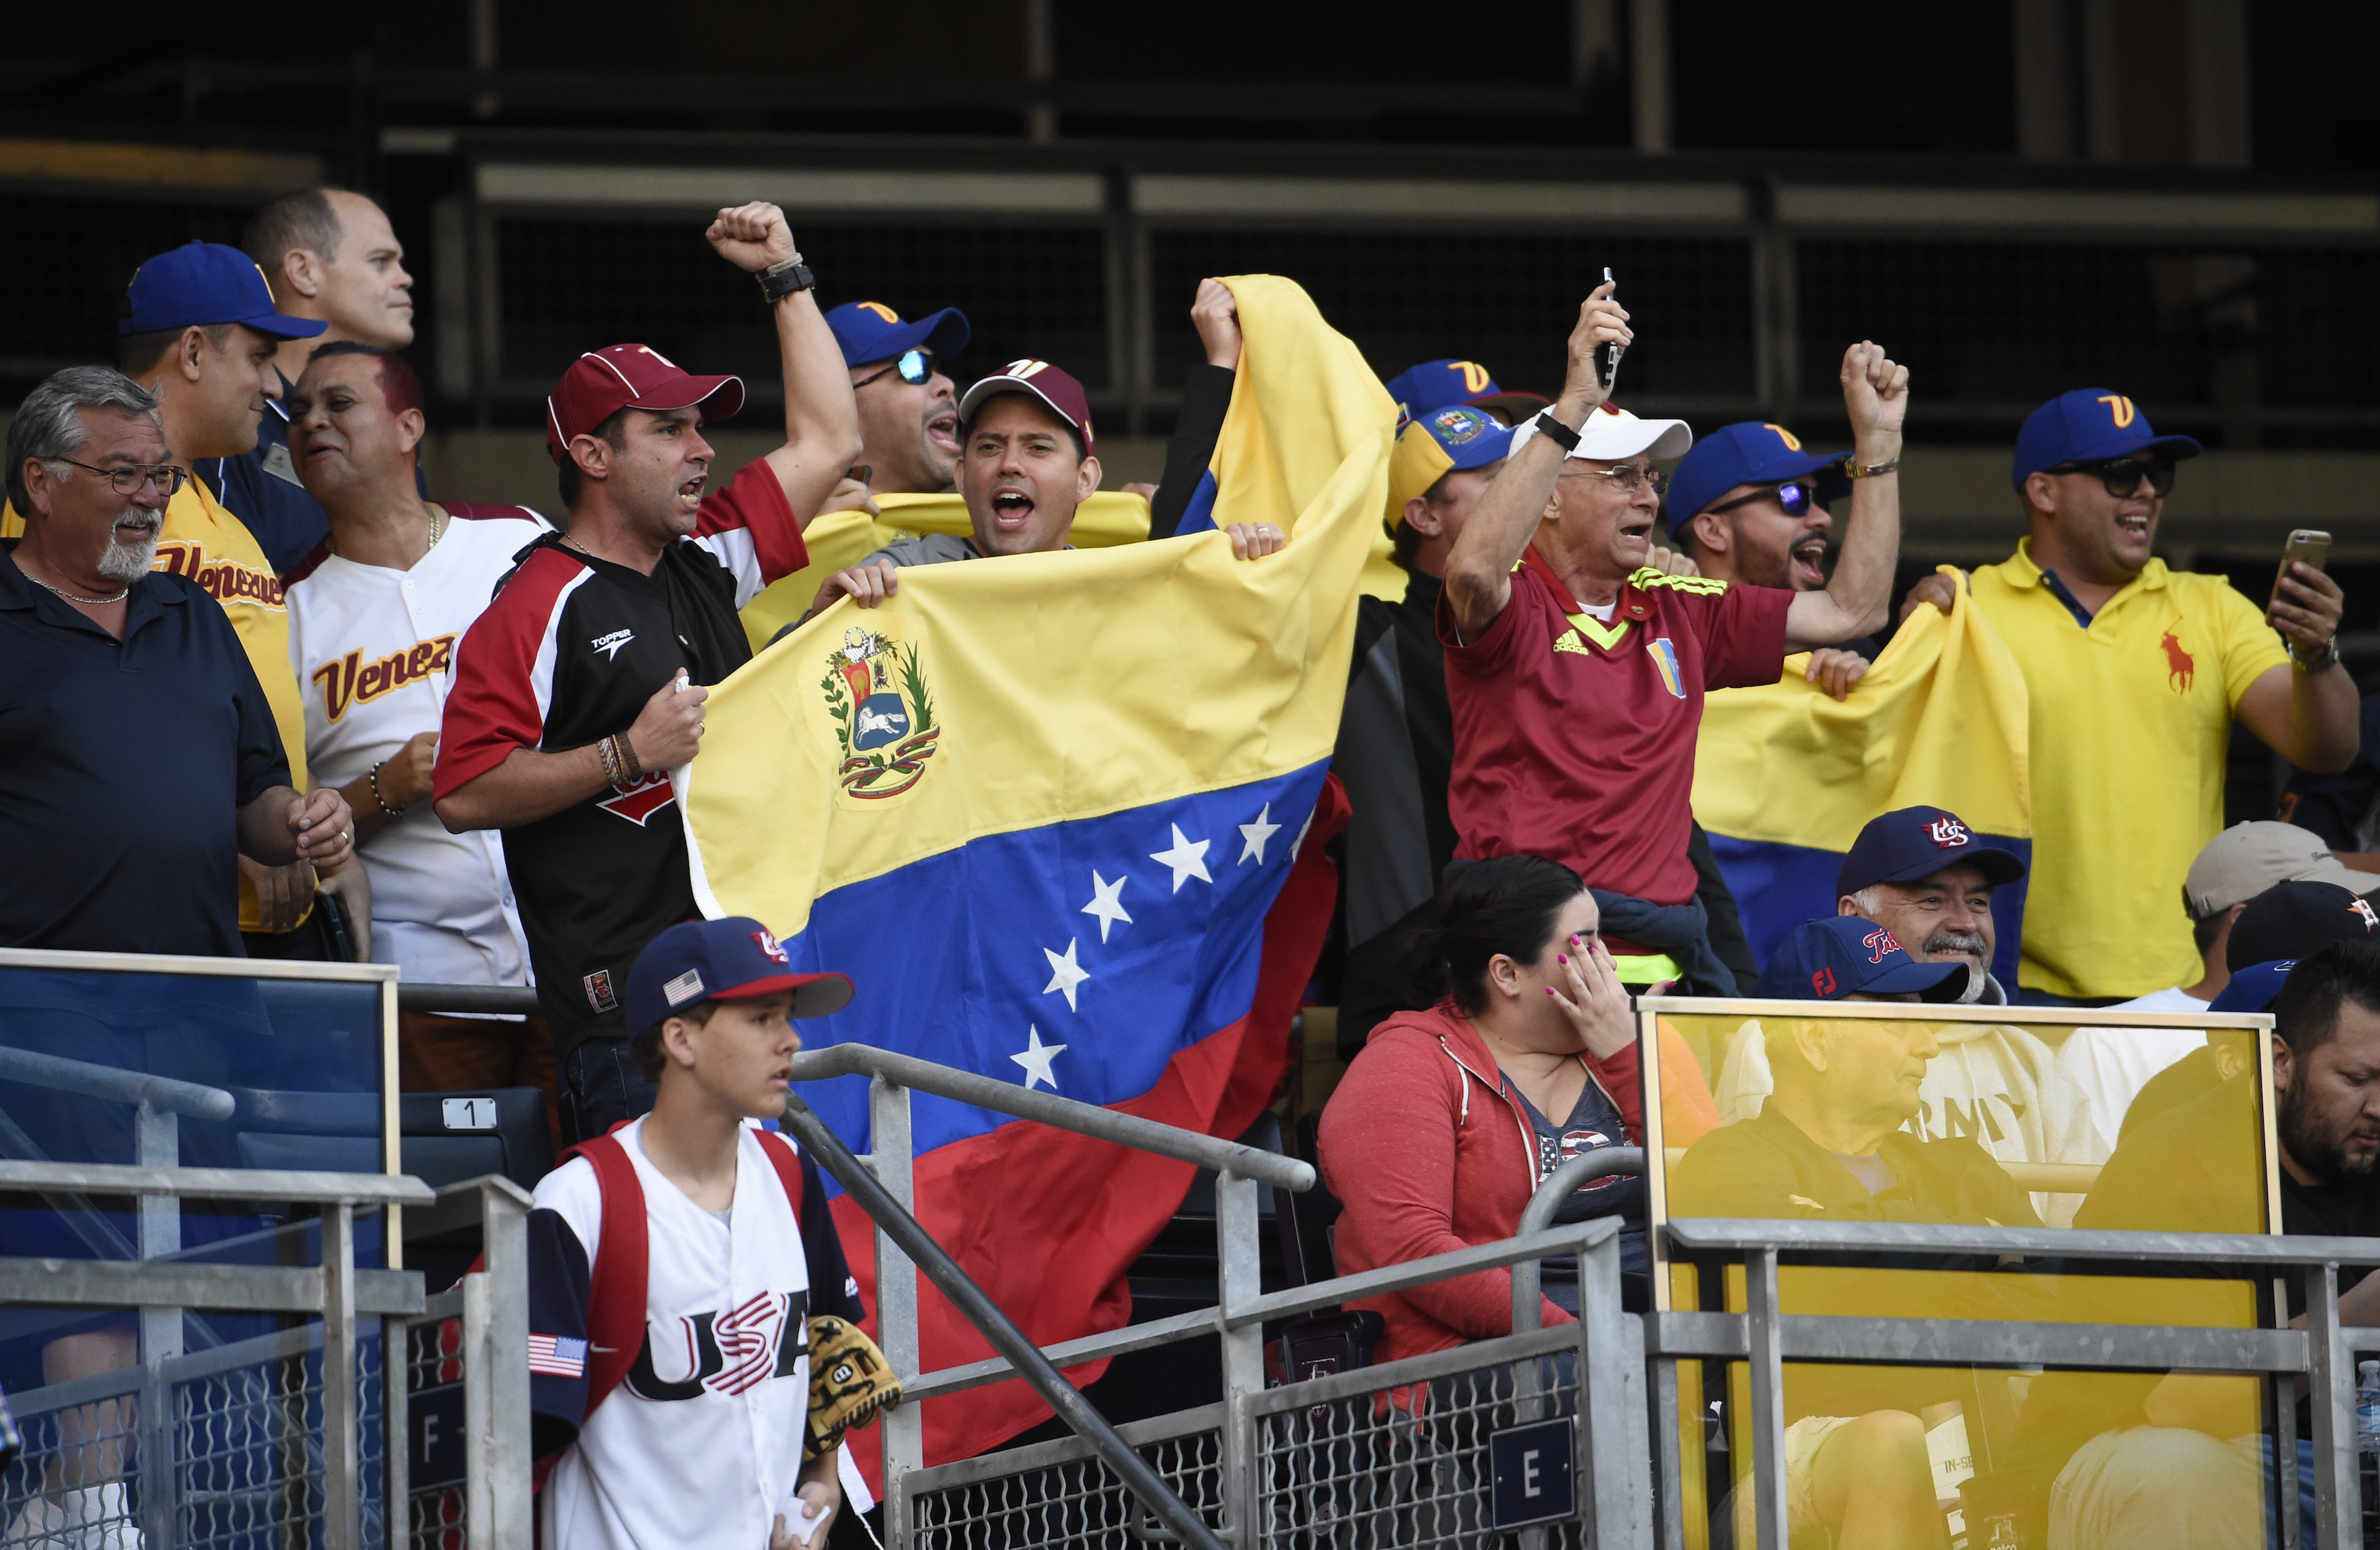 Venezuela Citizens Complain After Government Spends $10 Million on Baseball Instead of Food